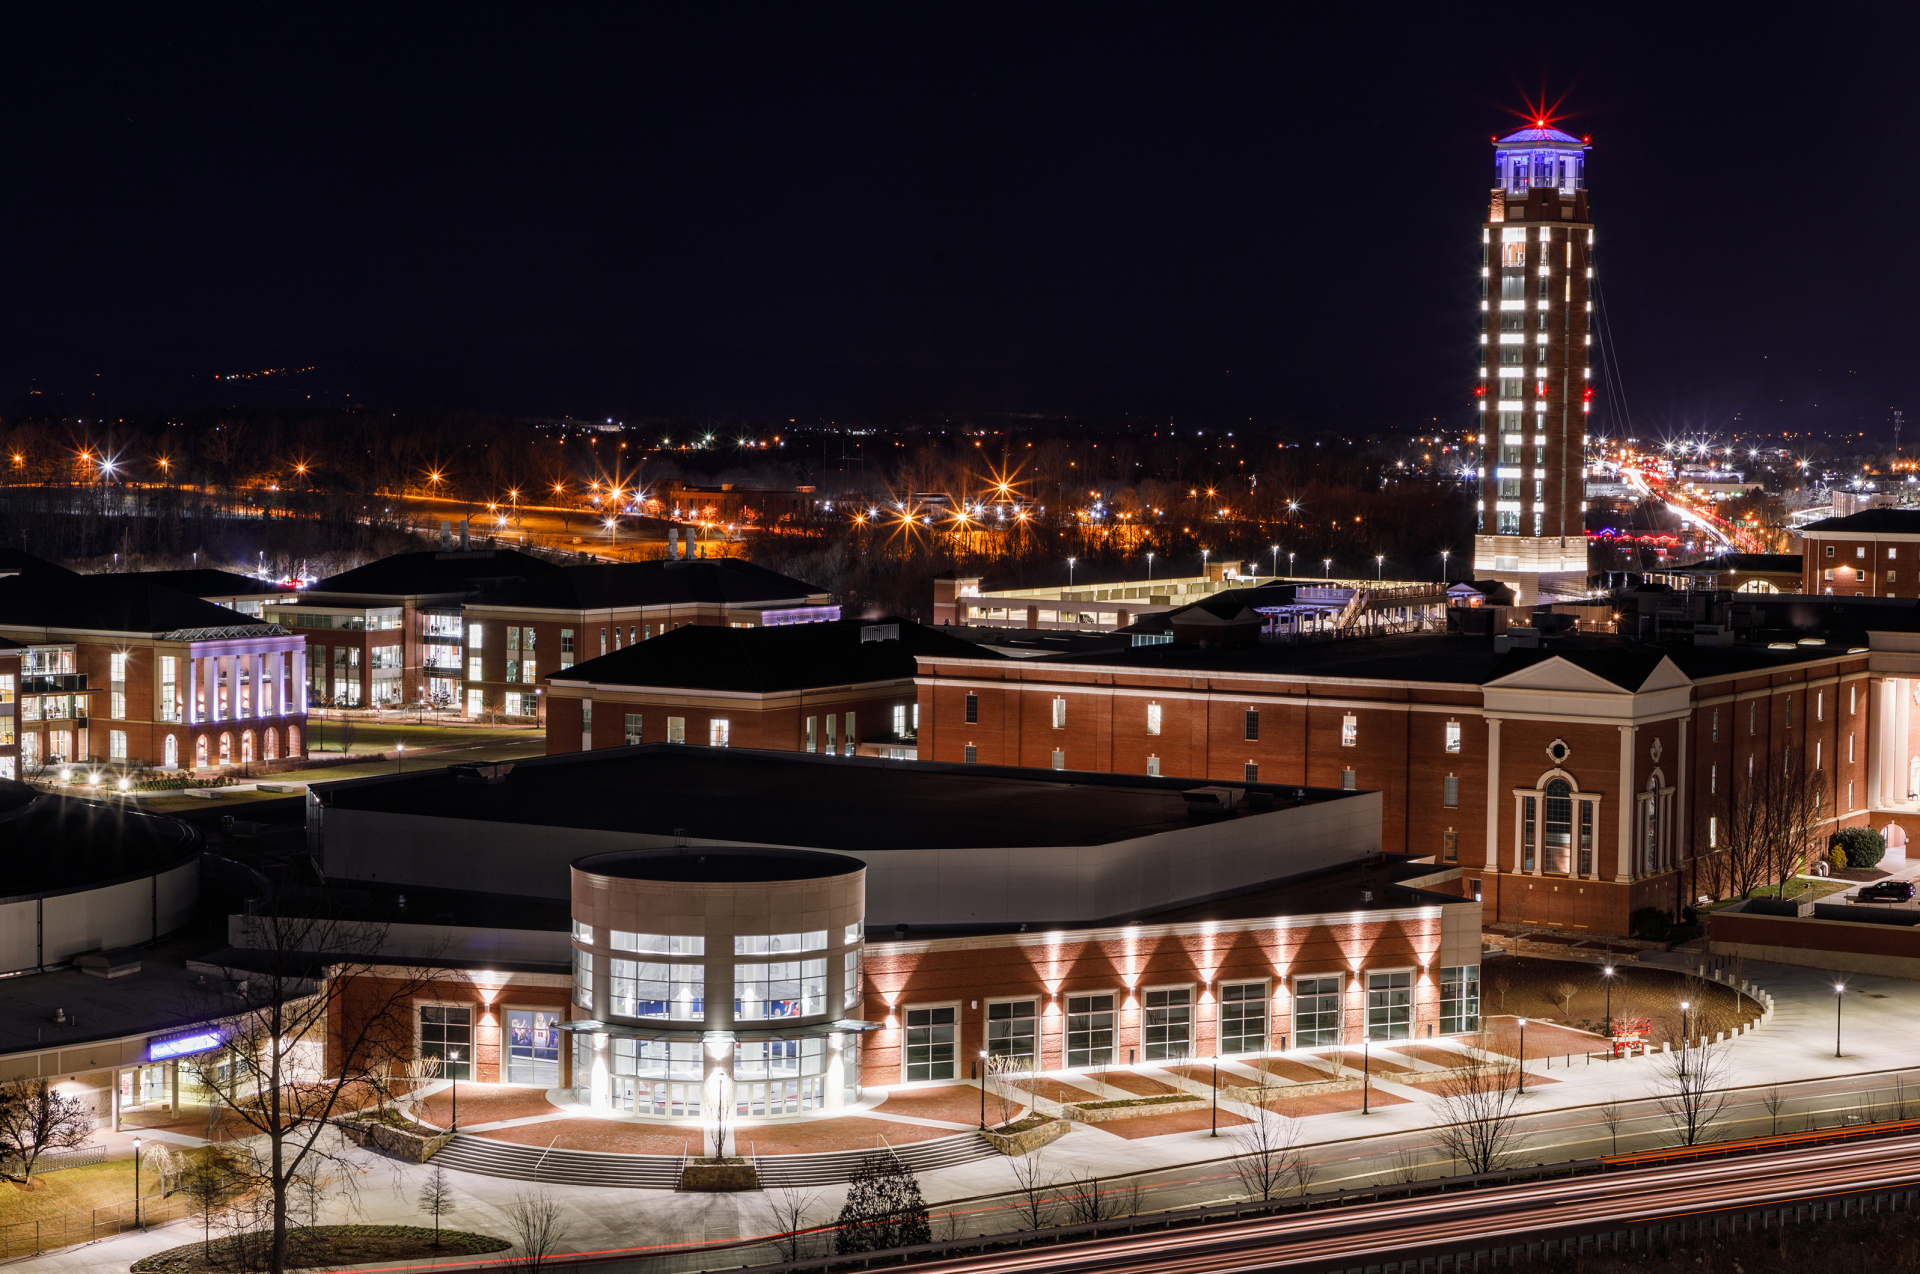 The Liberty Arena is photographed at night on January 20th, 2021  (Photograph by Ross Kohl)